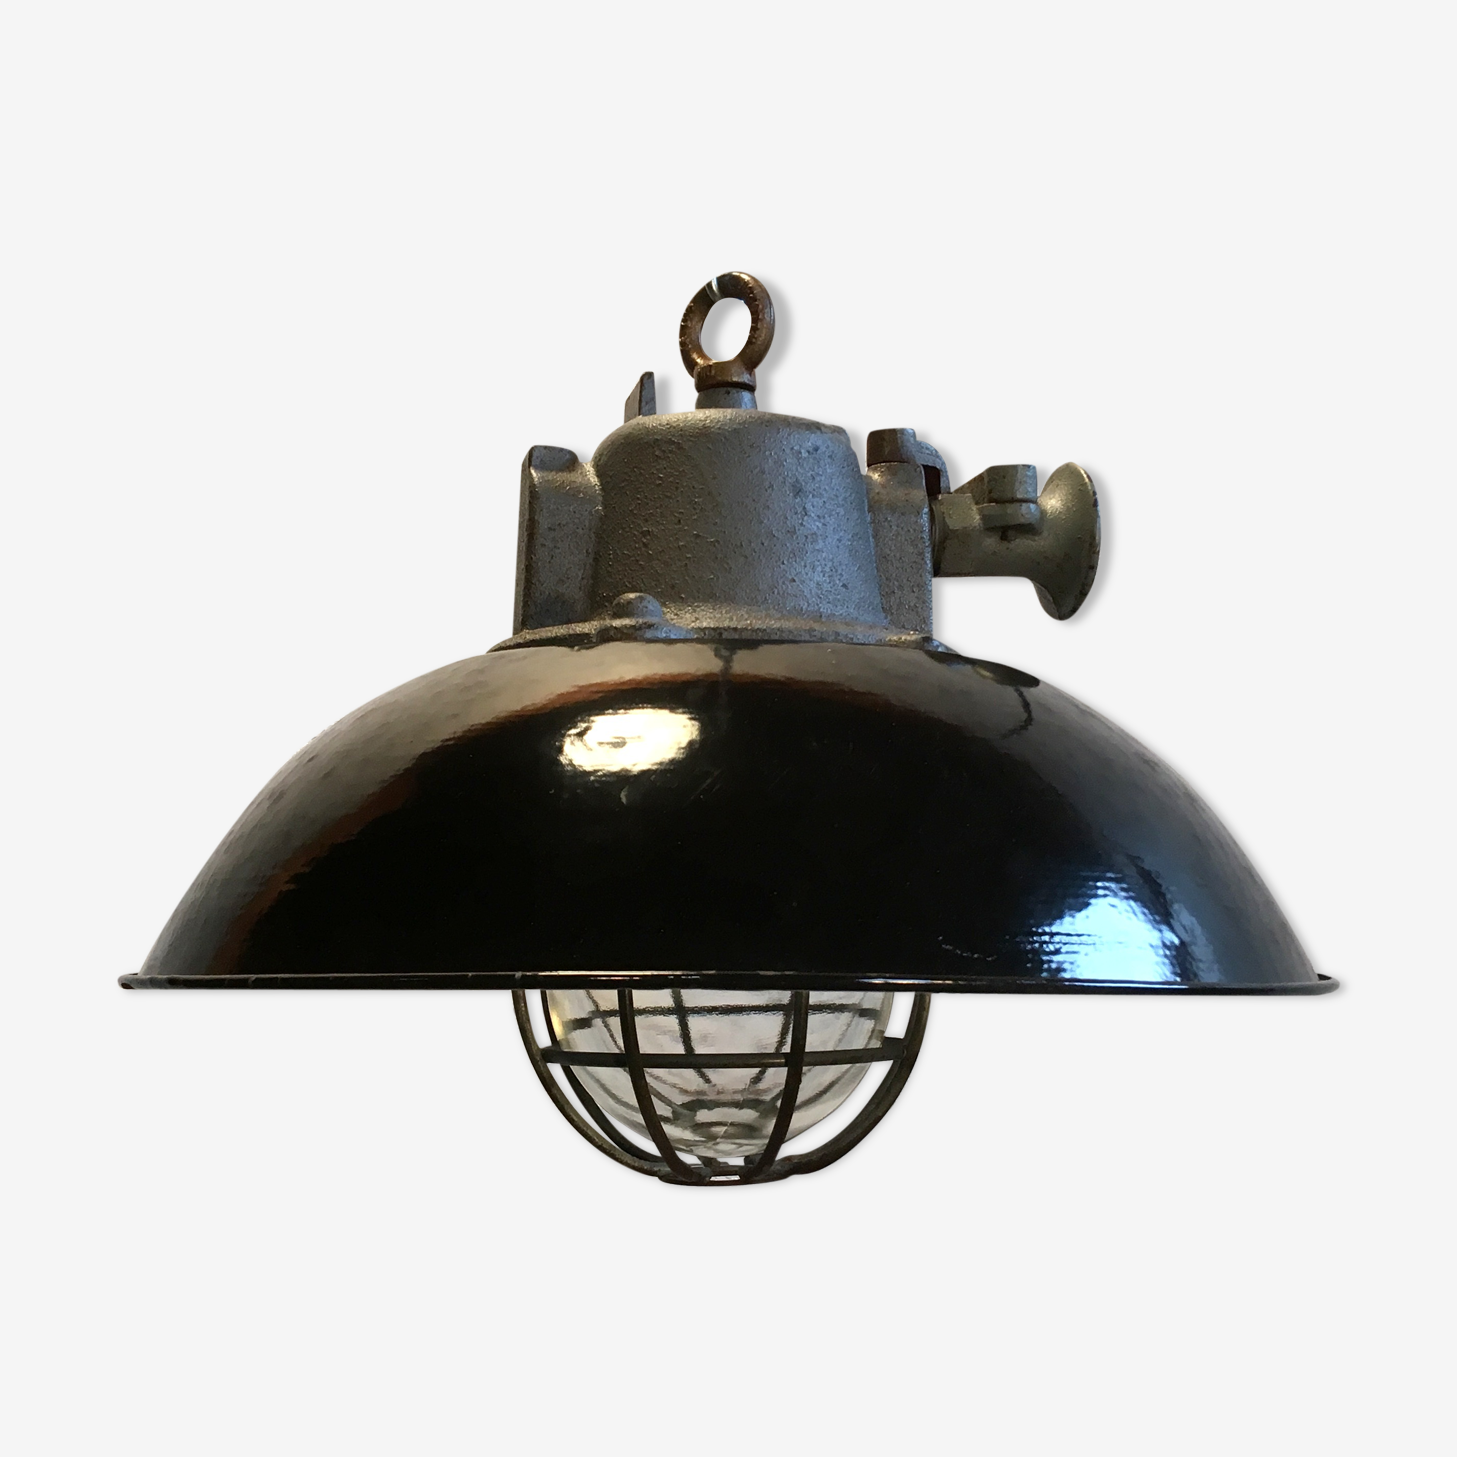 Black Enamel & Cast Iron Industrial Cage Pendant Lamp, 1950s